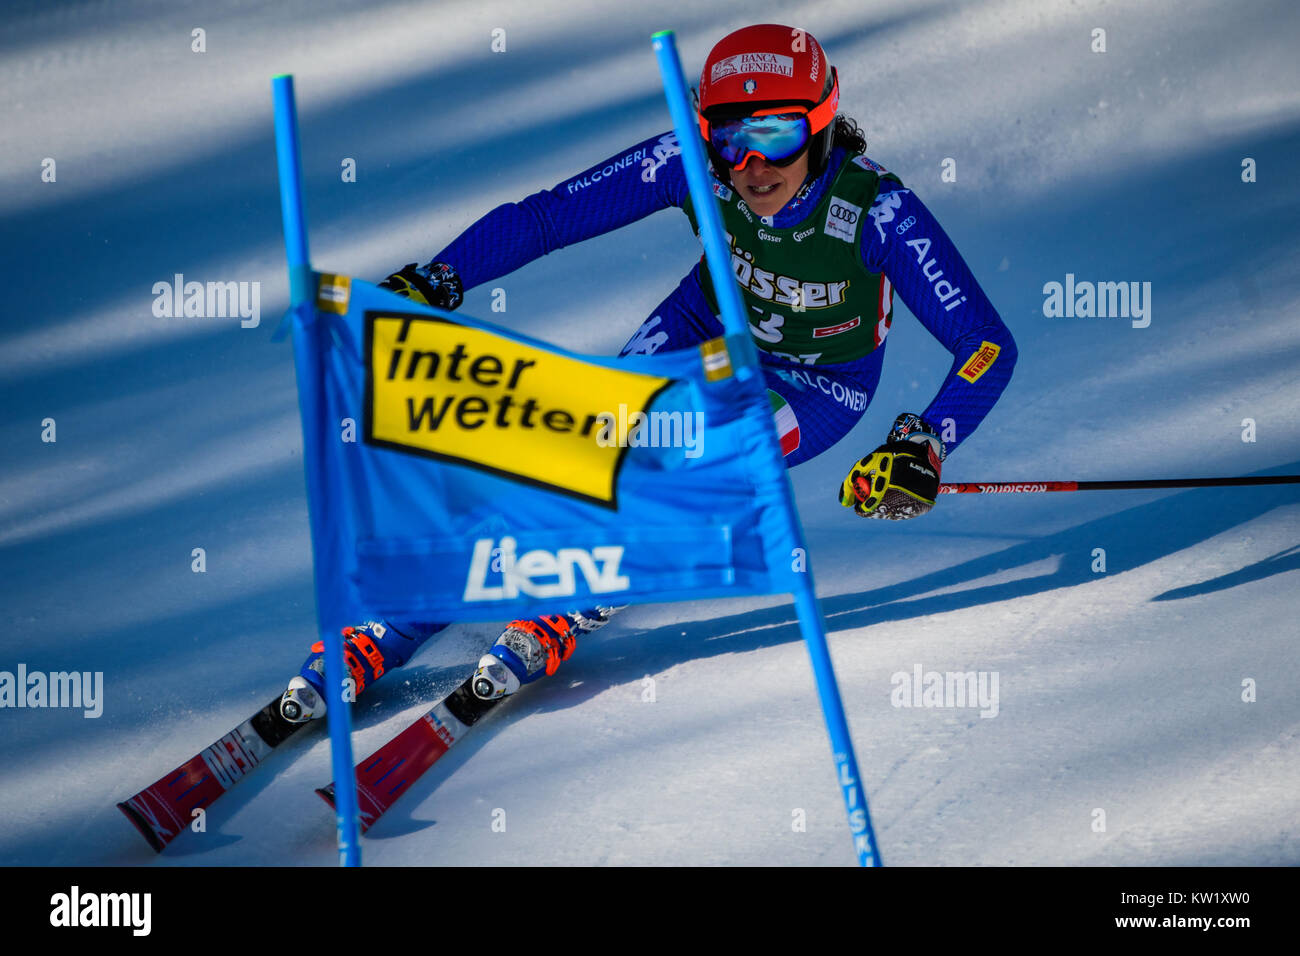 Lienz, Austria. 29th Dec, 2017. Frederica Brignone of Italy competes during the FIS World Cup Ladies Giant Slalom - Stock Image